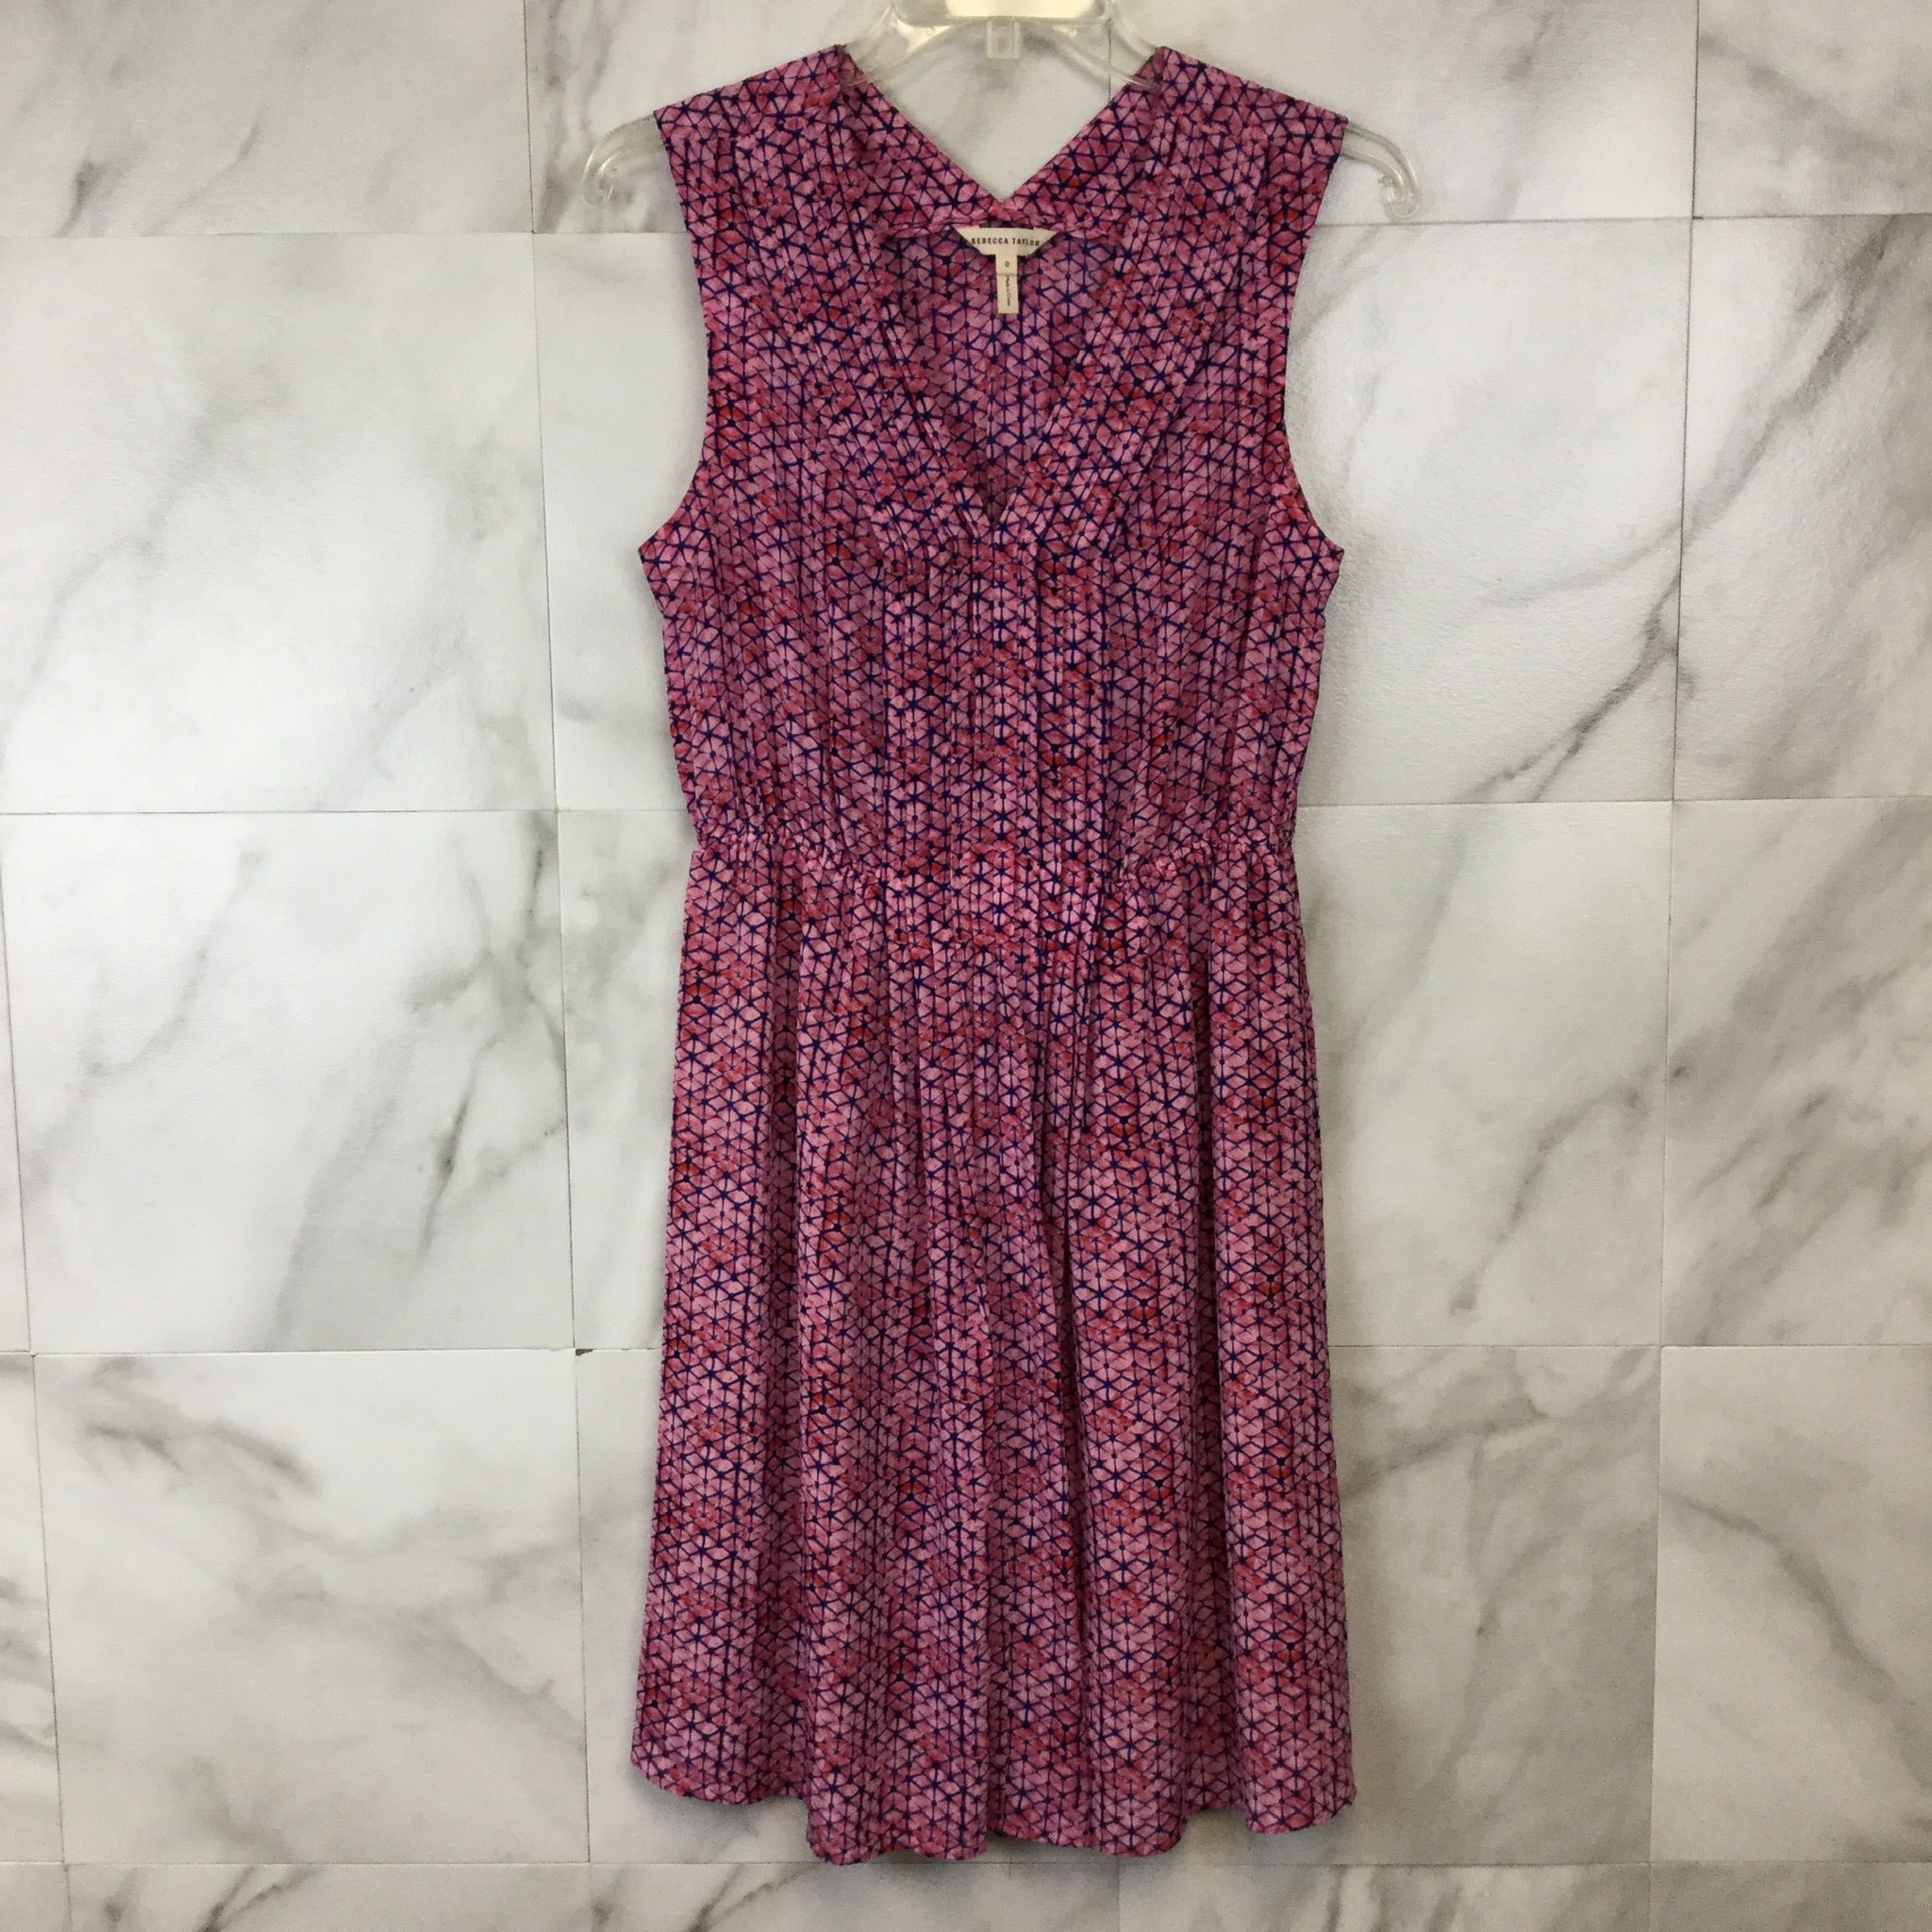 Rebecca Taylor Sleeveless Shibori V-Neck Dress - size 0